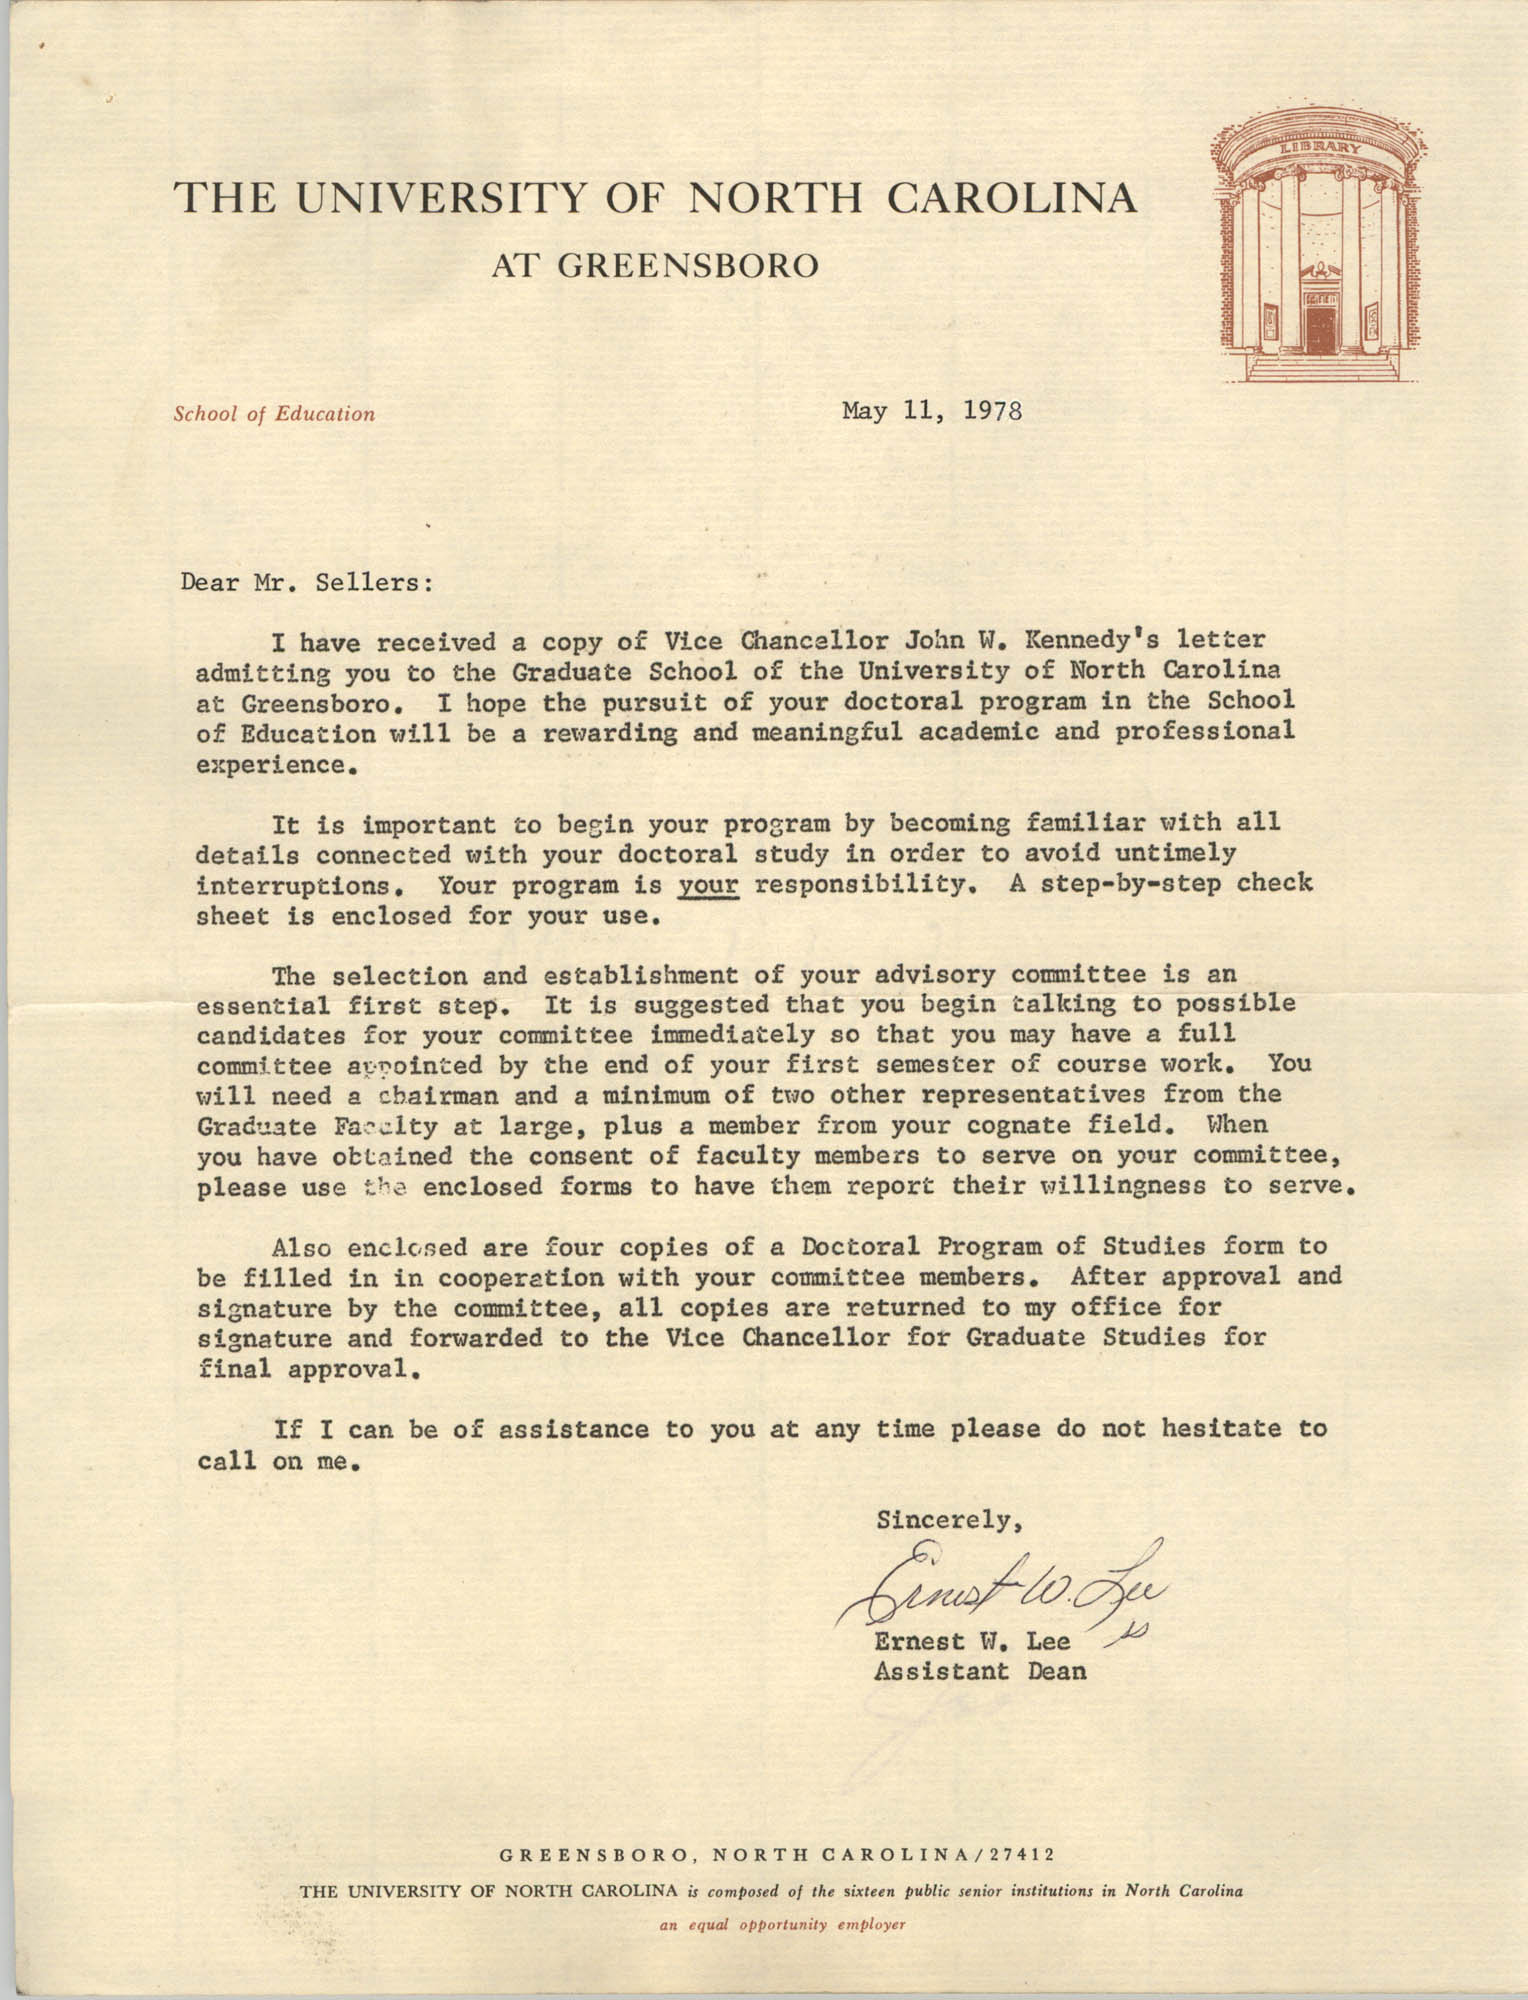 Letter from Ernest W. Lee to Cleveland Sellers, May 11, 1978